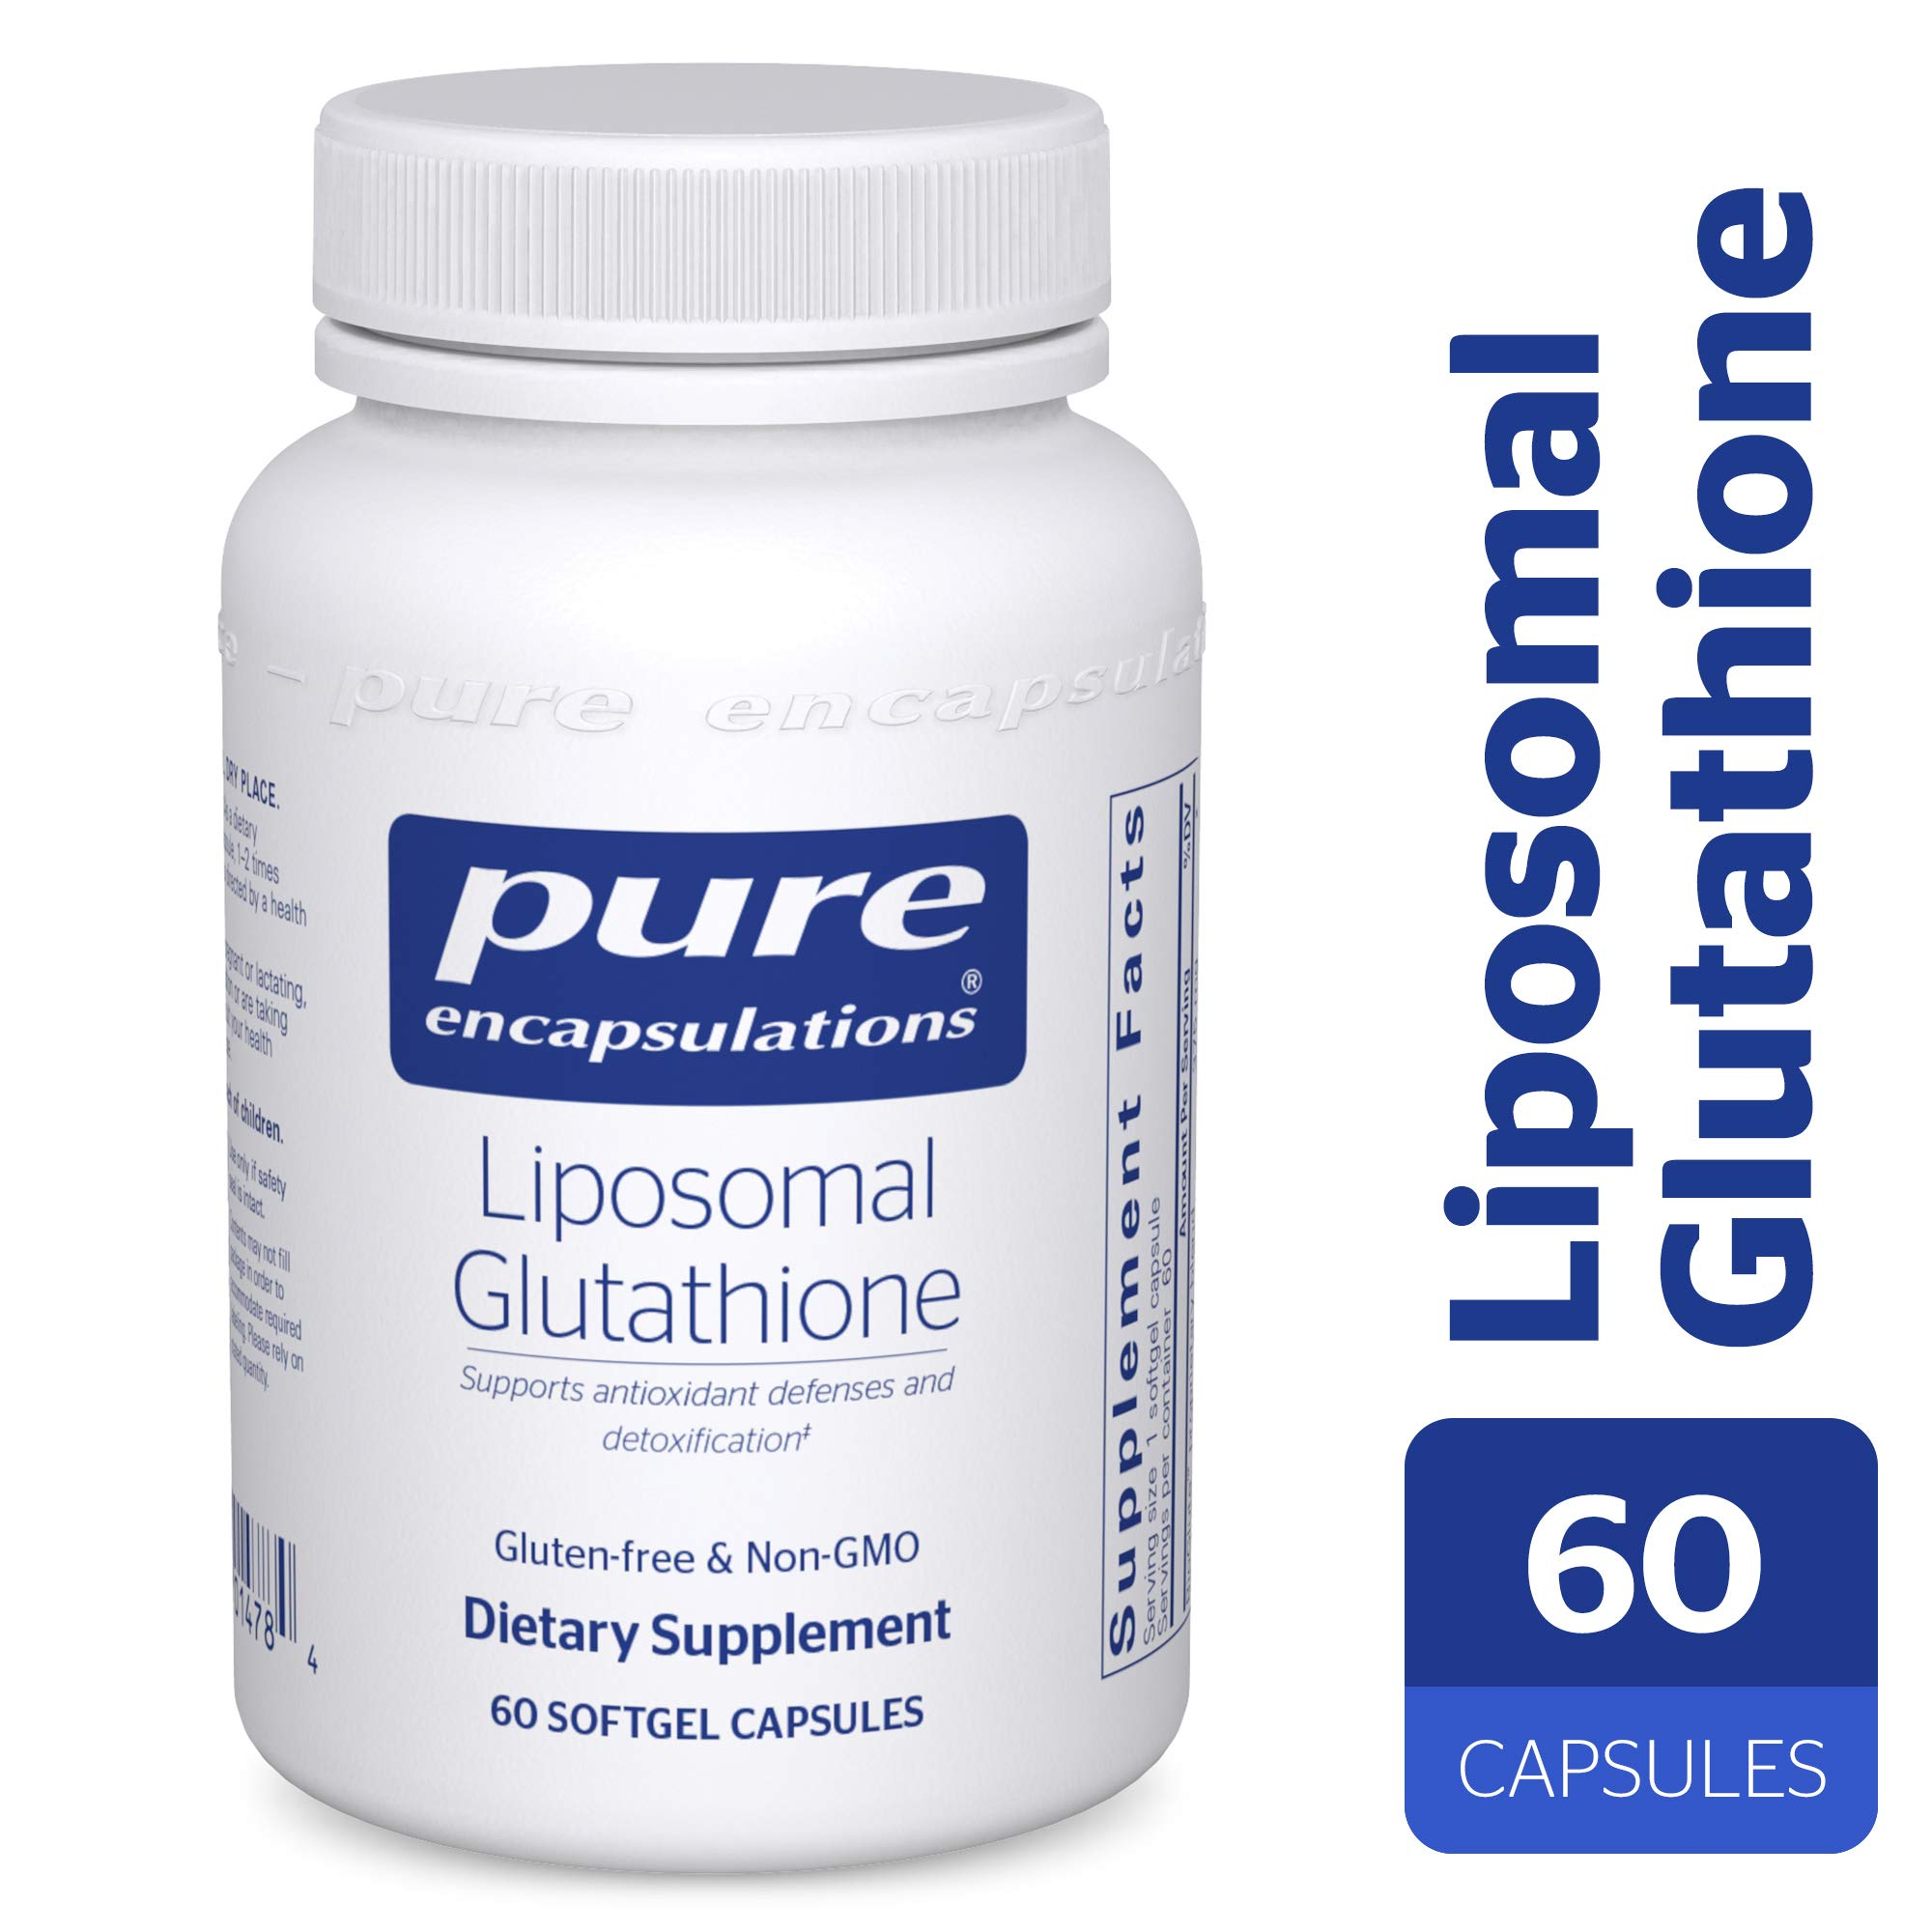 Pure Encapsulations - Liposomal Glutathione - Antioxidants, Liver Support and Detoxification* - 60 Softgel Capsules by Pure Encapsulations (Image #1)